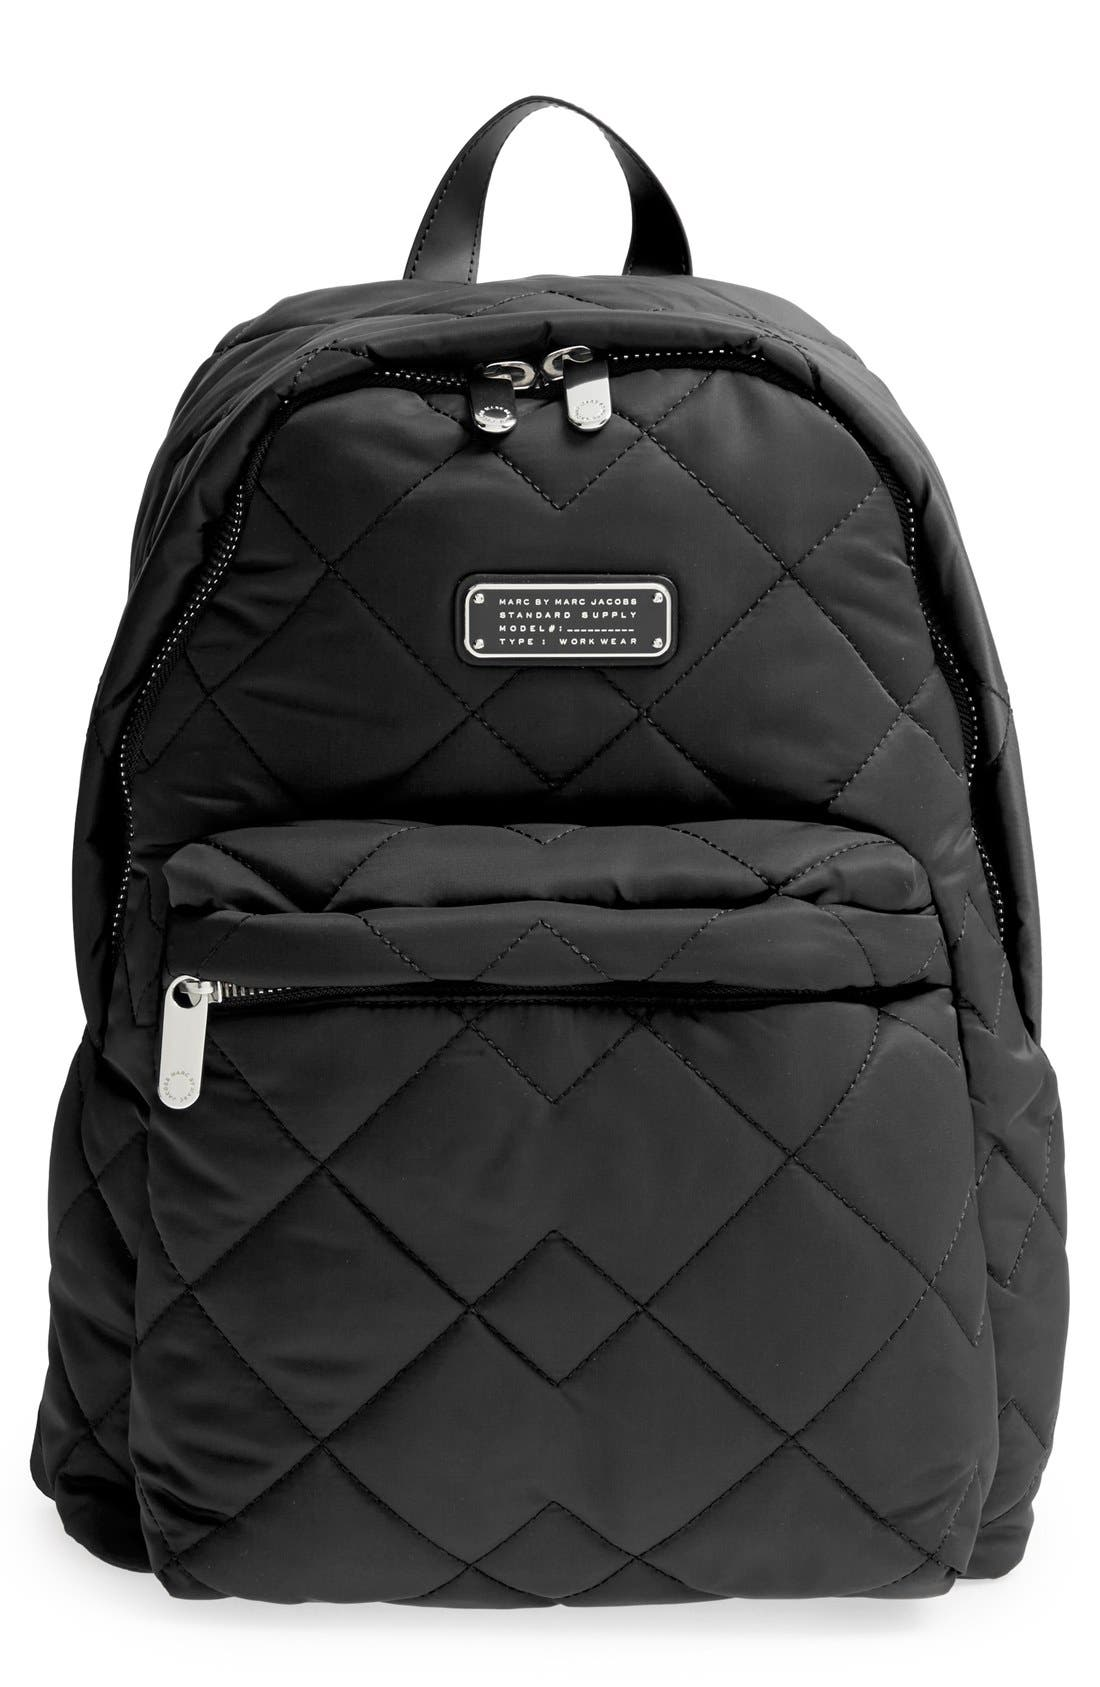 Alternate Image 1 Selected - MARC BY MARC JACOBS 'Crosby' Quilted Nylon Backpack